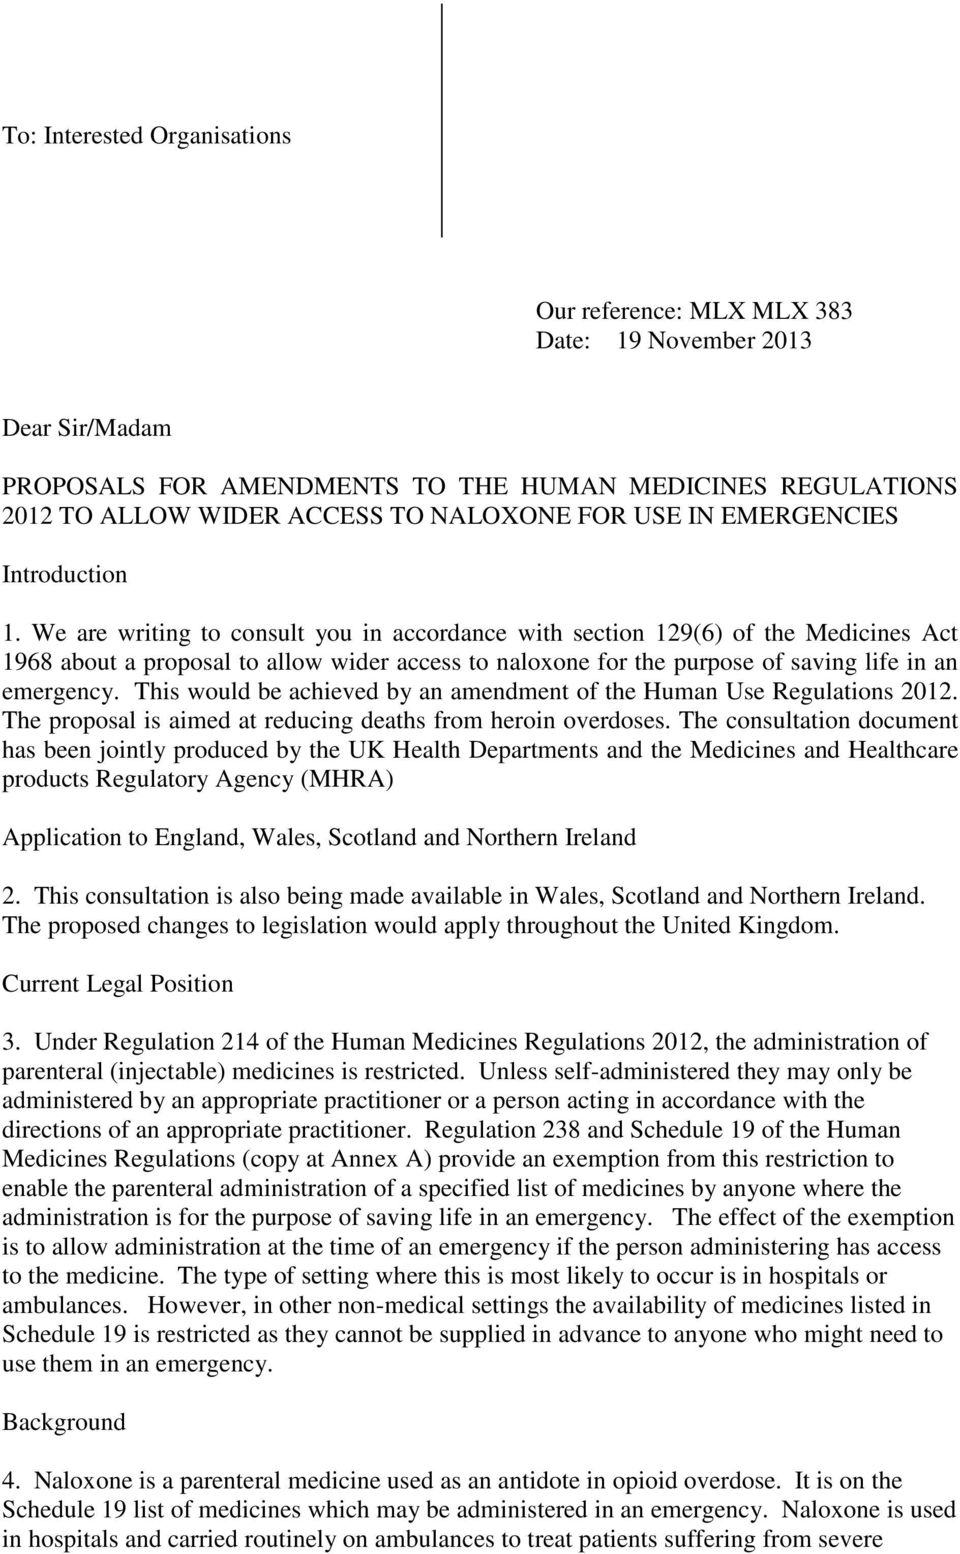 We are writing to consult you in accordance with section 129(6) of the Medicines Act 1968 about a proposal to allow wider access to naloxone for the purpose of saving life in an emergency.